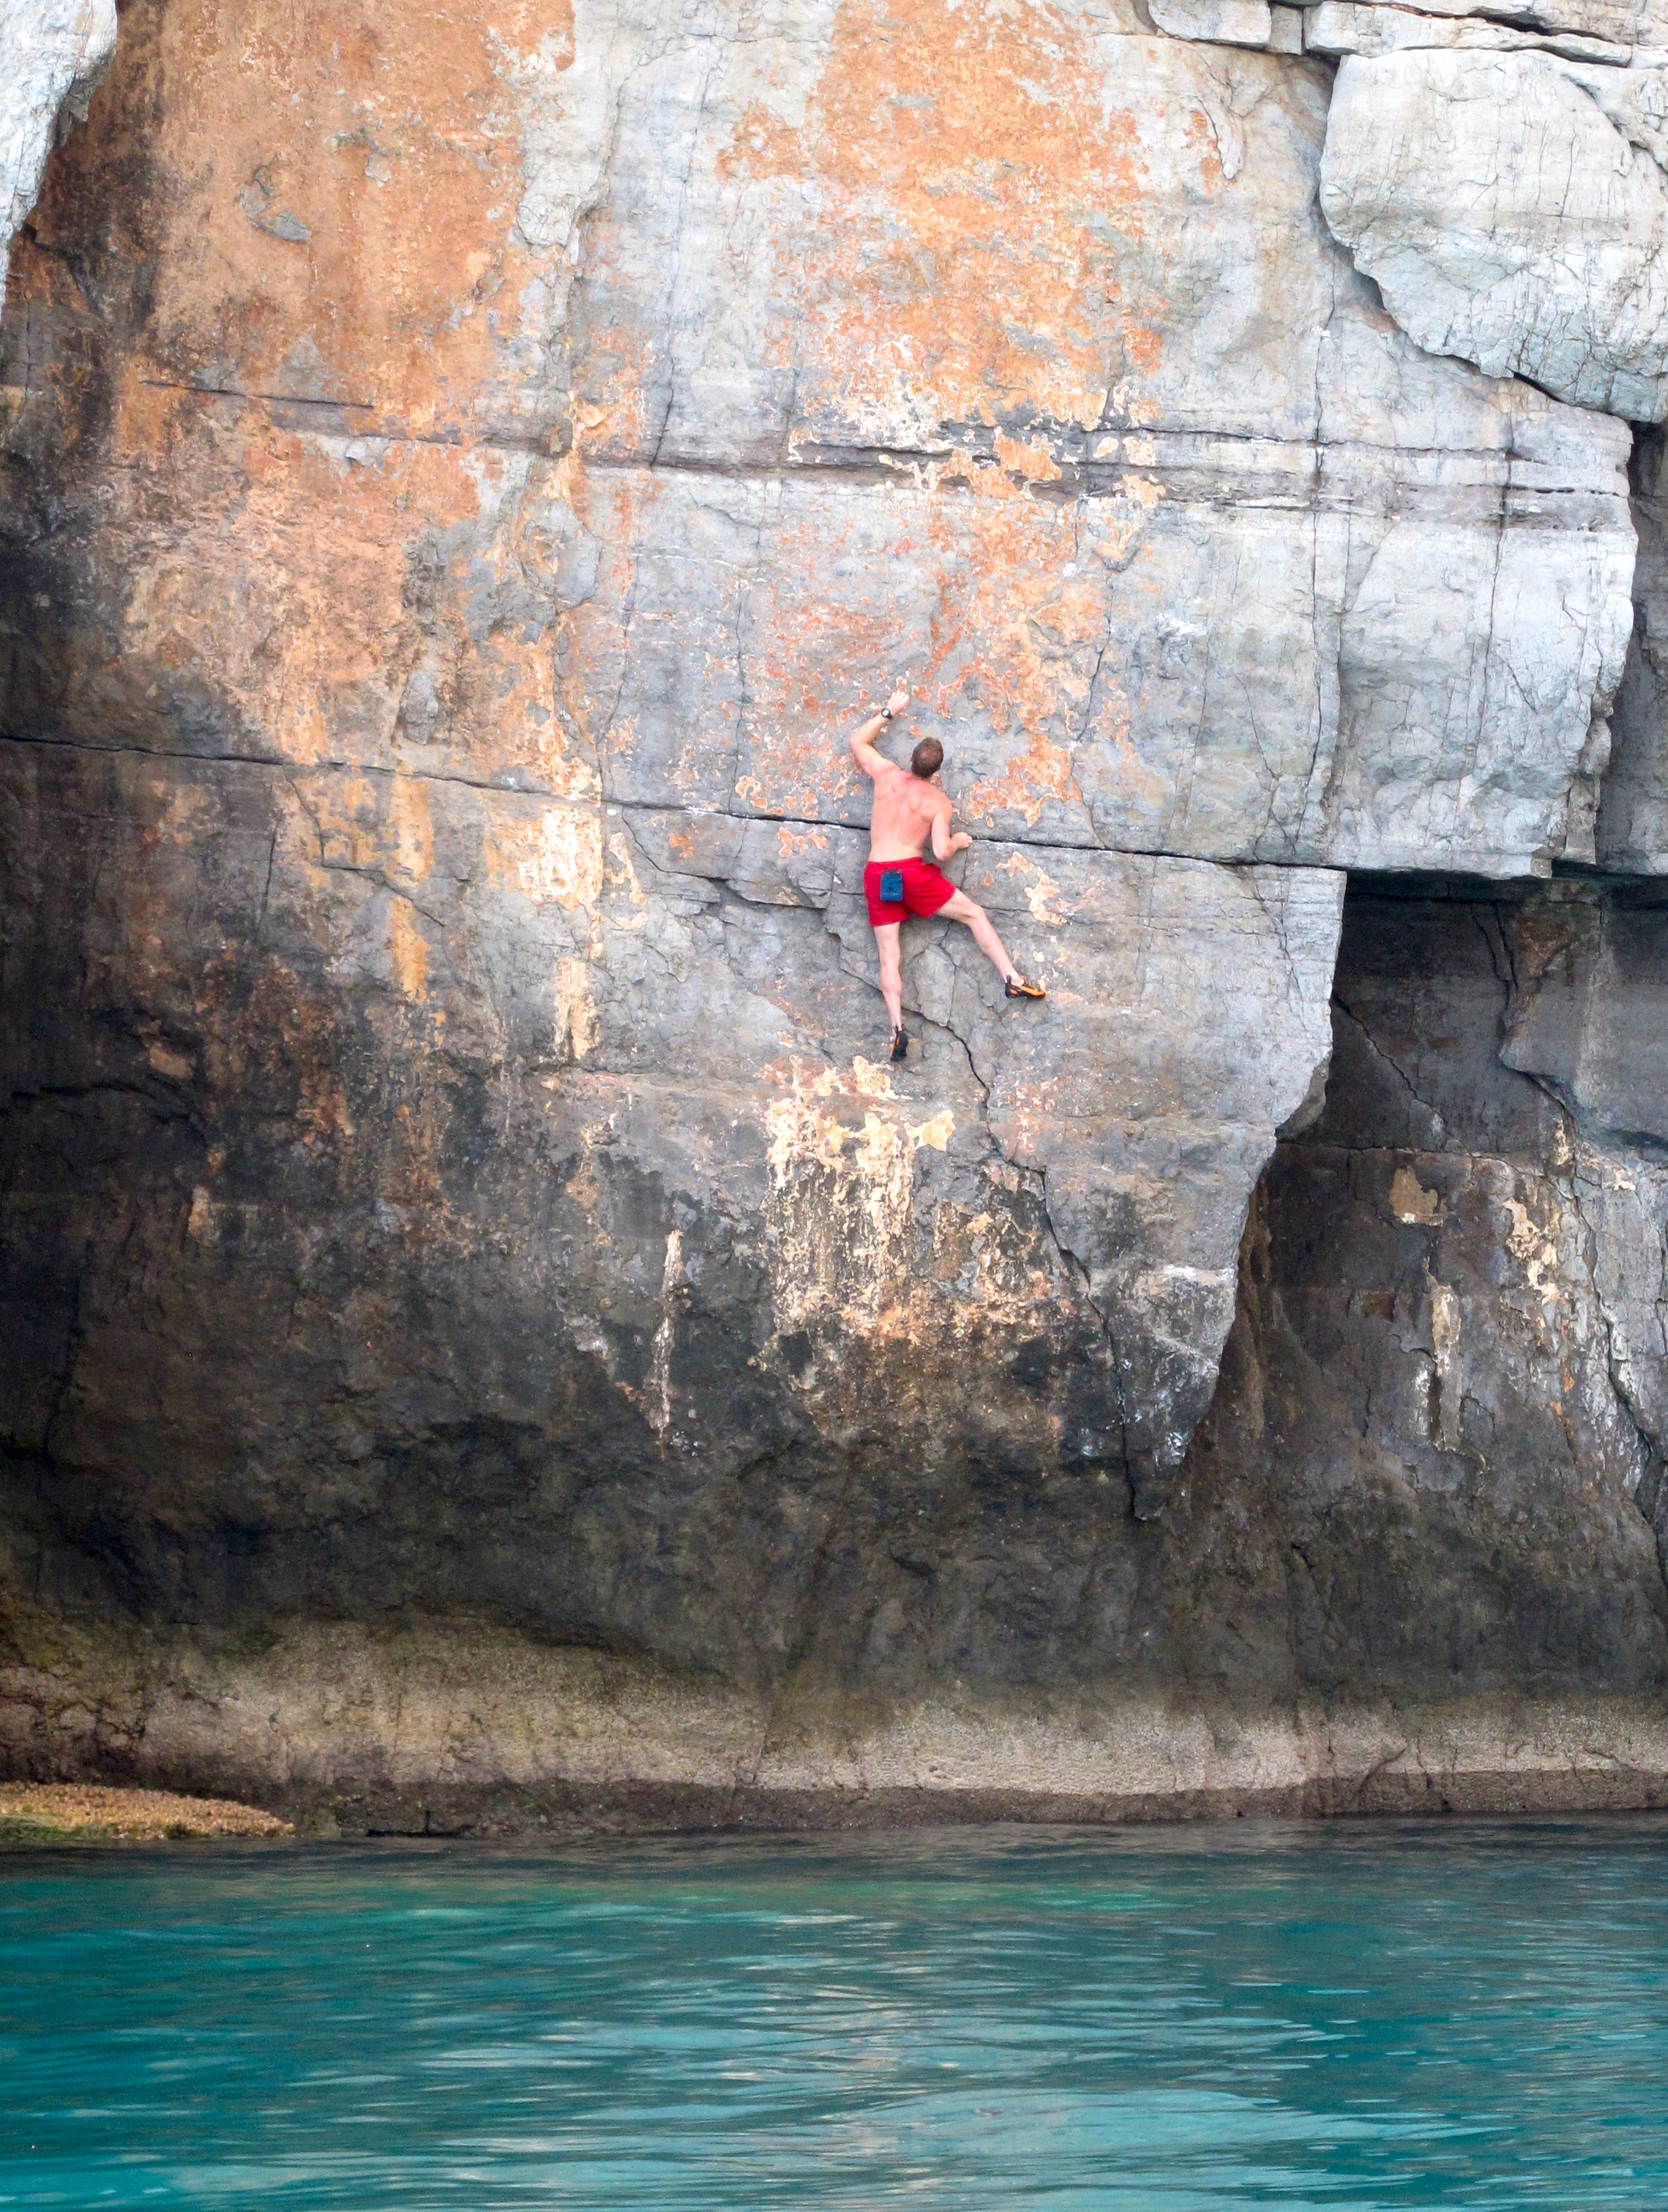 Tim Emmett making the second ascent of Dreaming of Trevallen 6c, Big Wall Bay, Dibba in 2011.  Photo: Gresham collection.